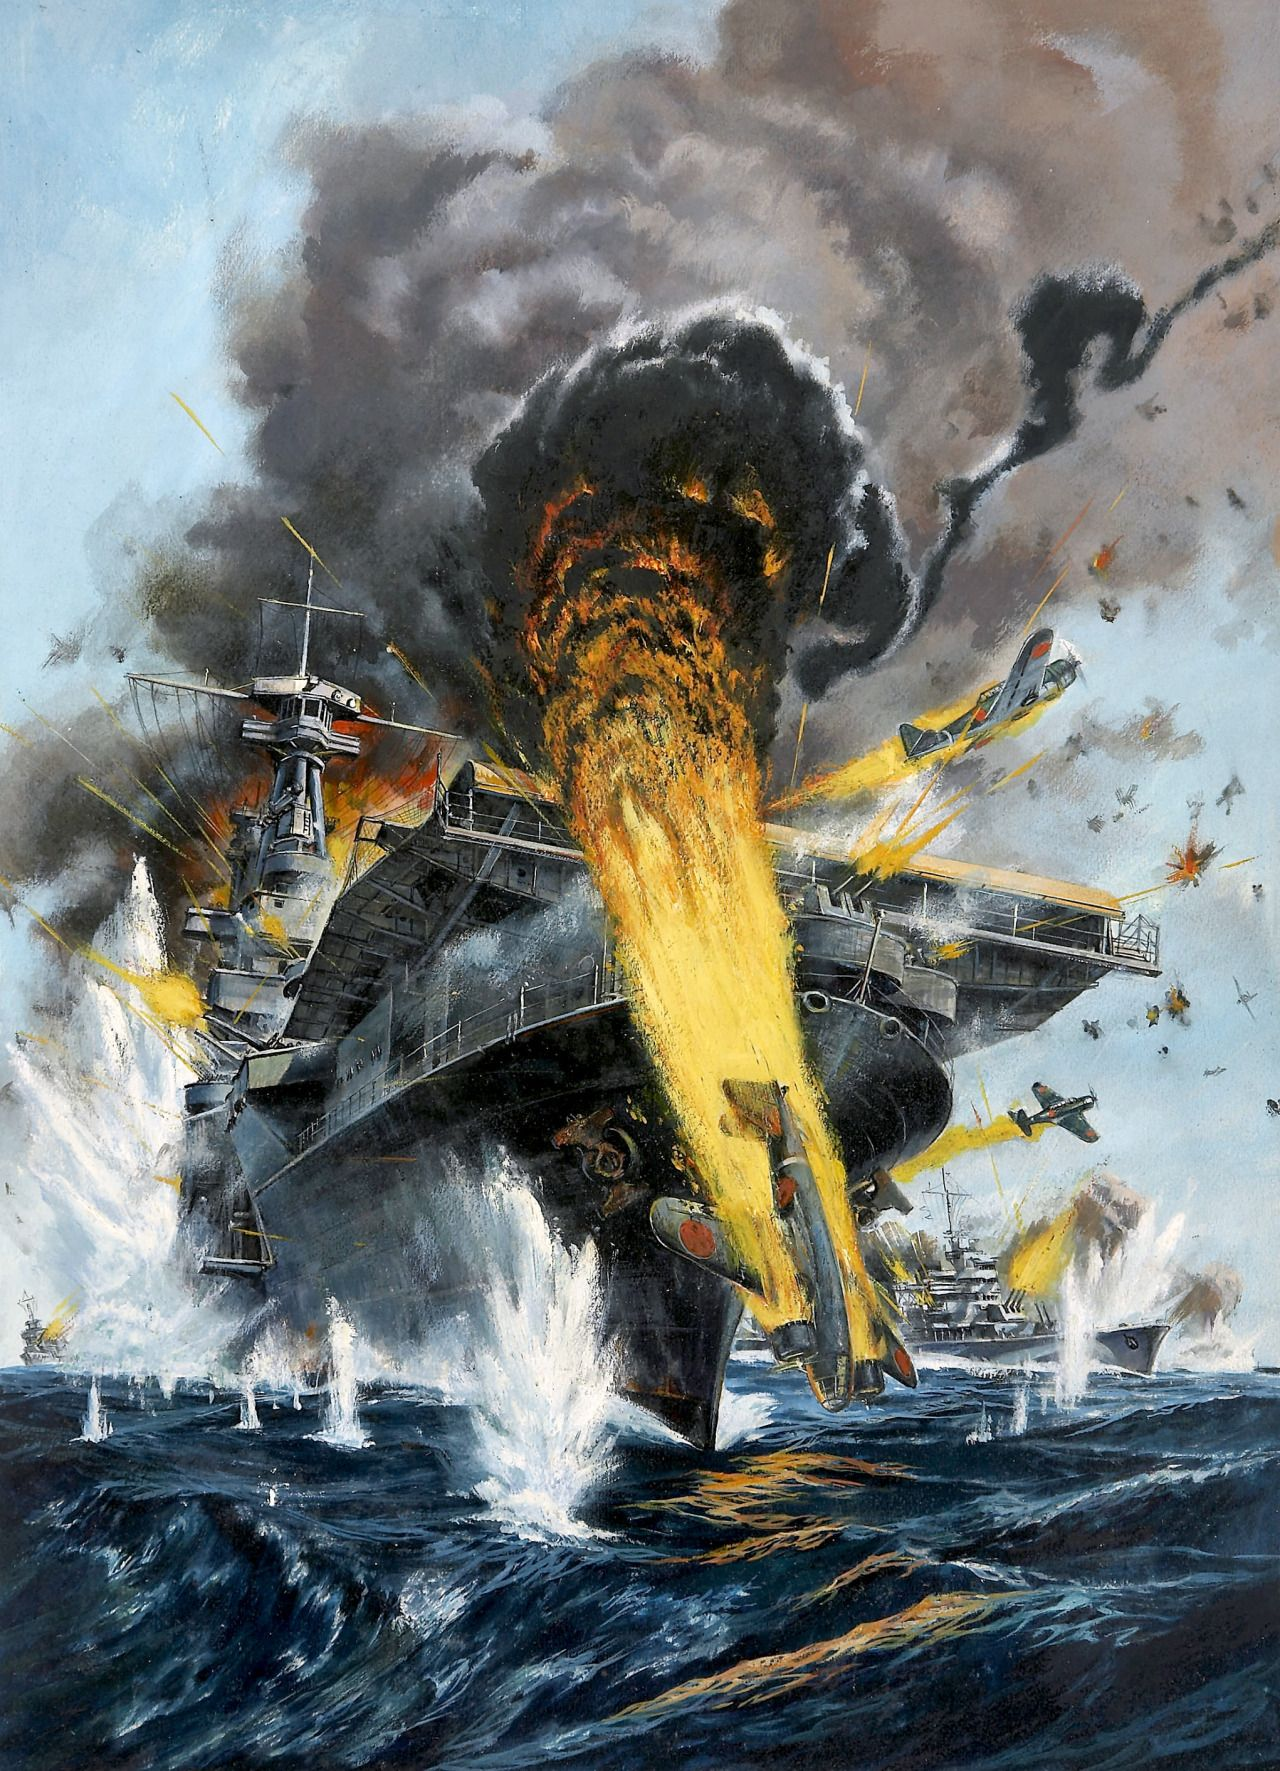 battle of midway wwii June 4 through the 7 marks the 75th anniversary of the battle of midway.